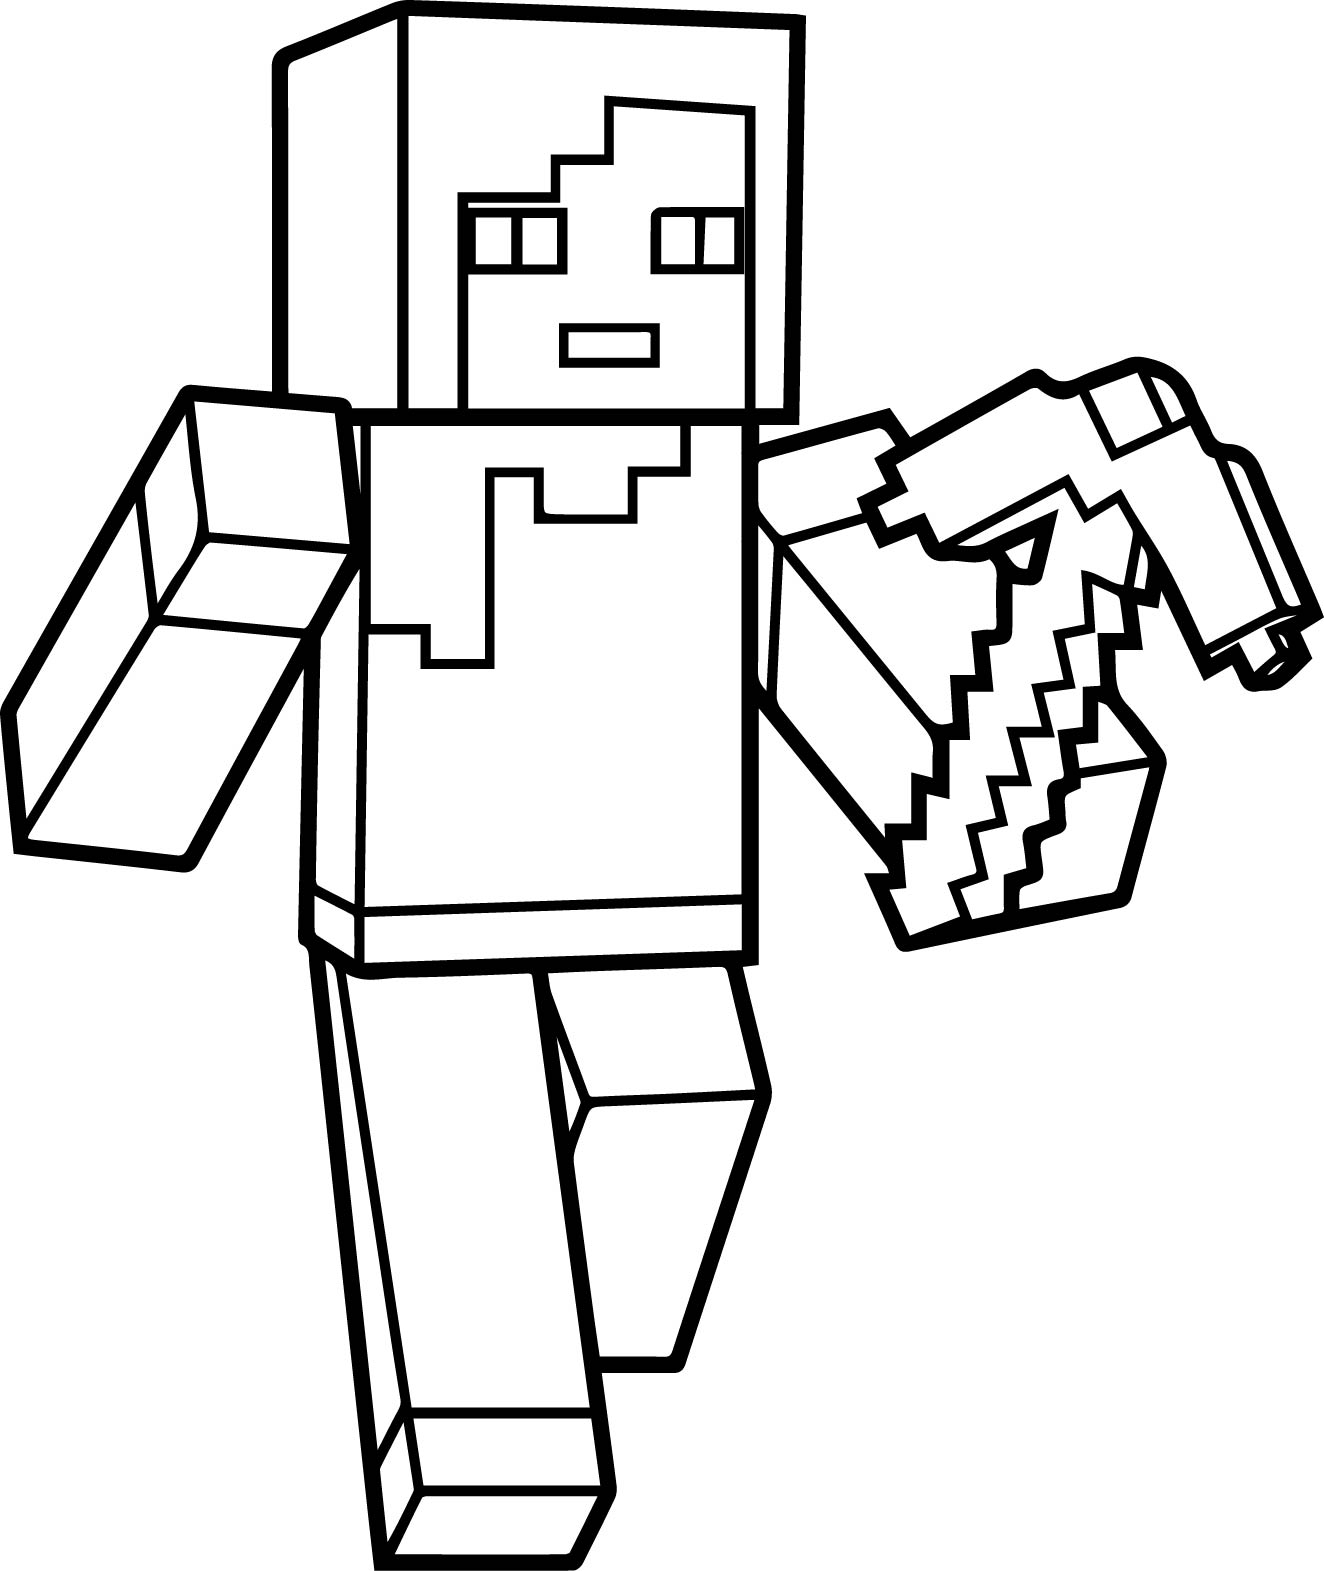 coloring minecraft printables minecraft steve coloring pages getcoloringpagescom coloring minecraft printables